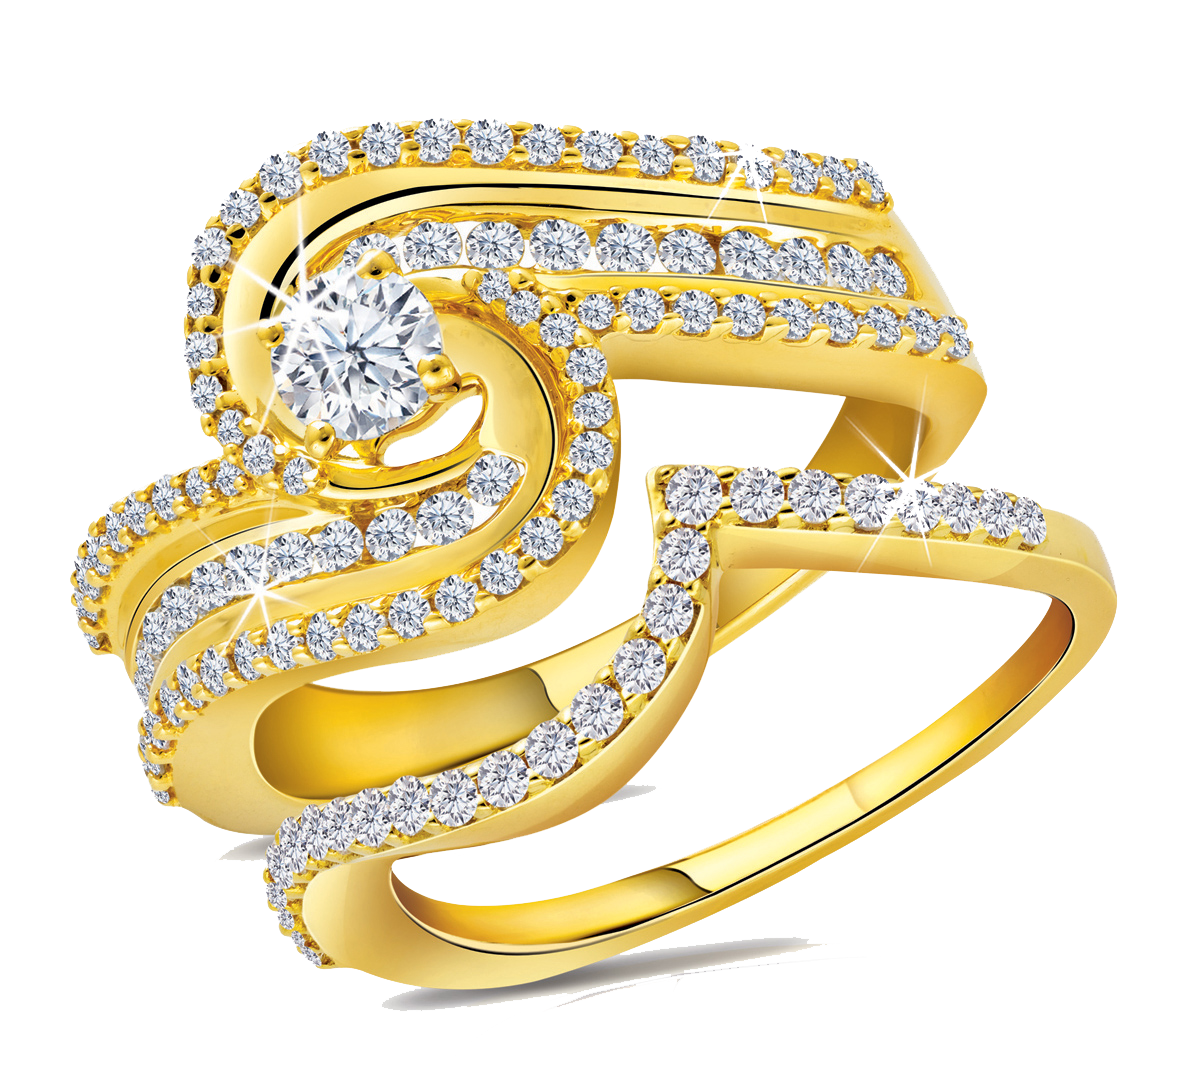 Jewellery Ring Picture PNG Image